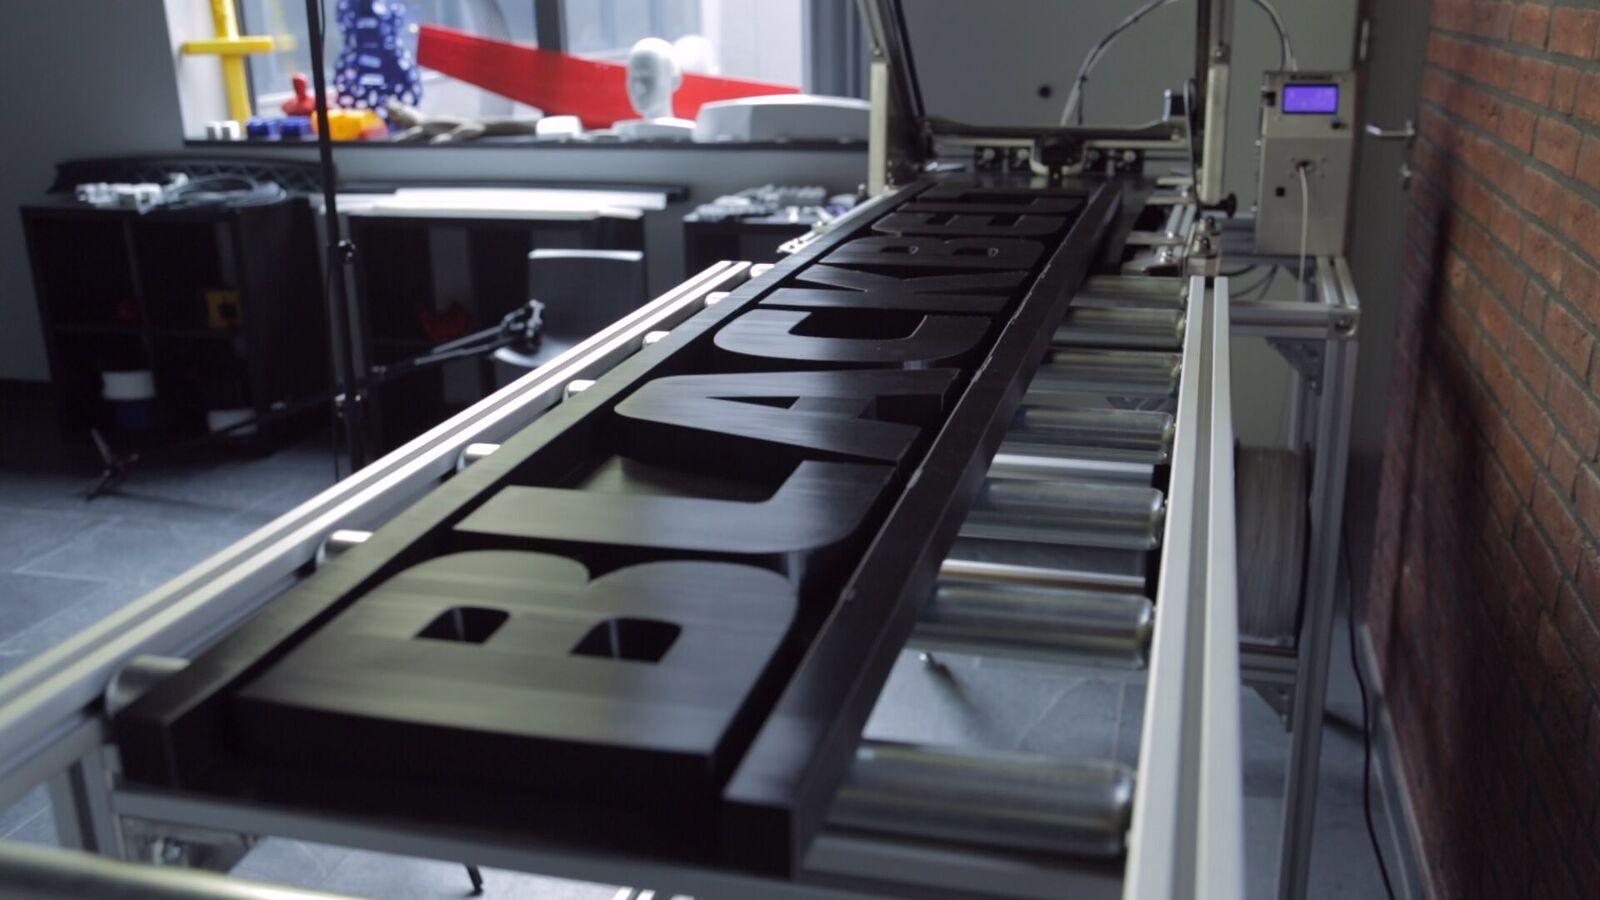 The machine is perfect for creating large horizontal parts like signs. Photo via Blackbelt.